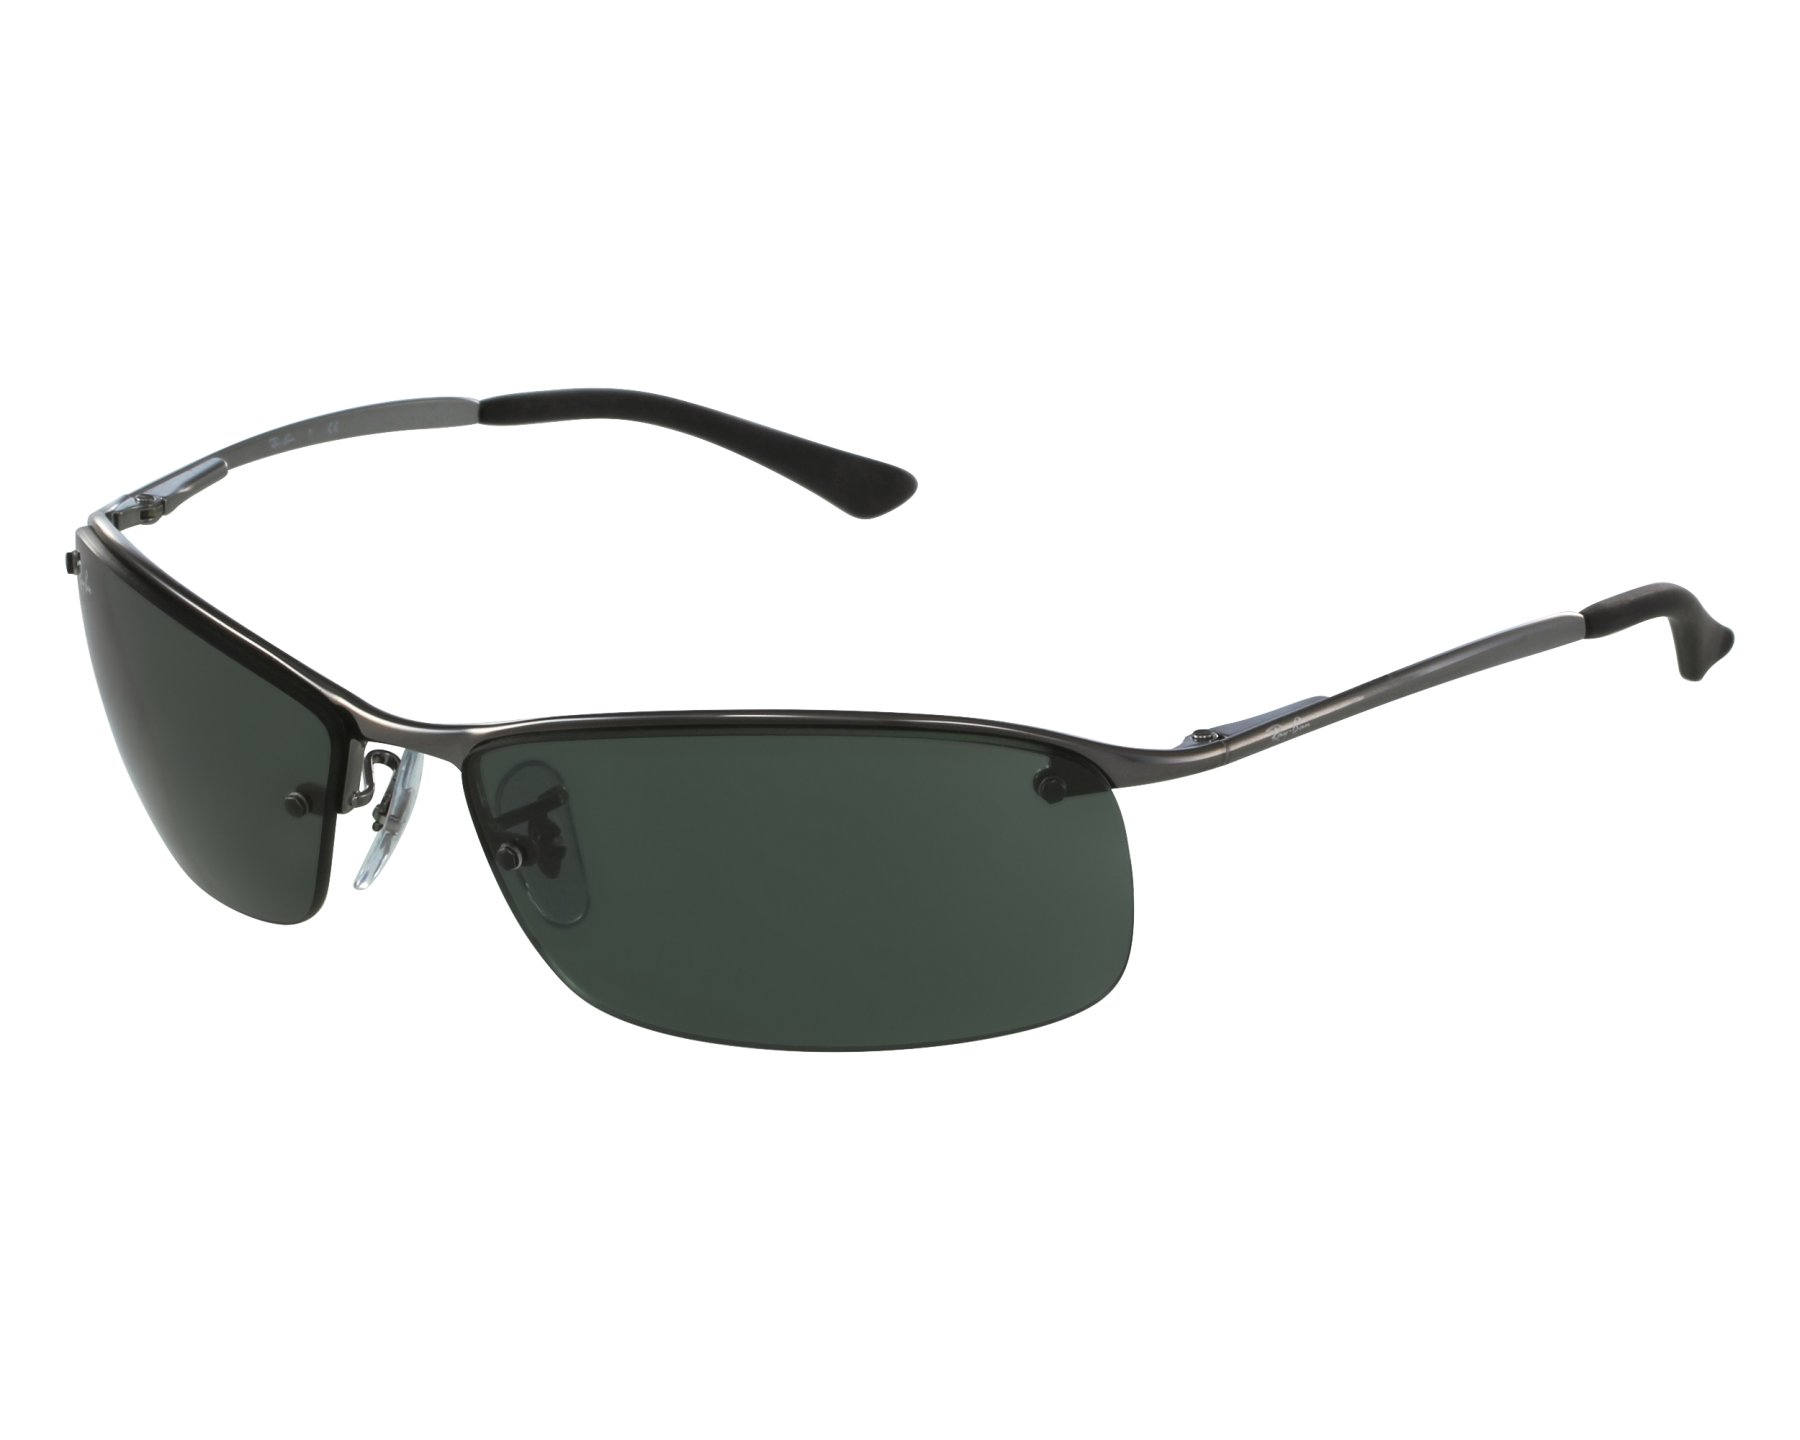 79c312f39f Sunglasses Ray-Ban RB-3183 004 71 63-15 Gun front view